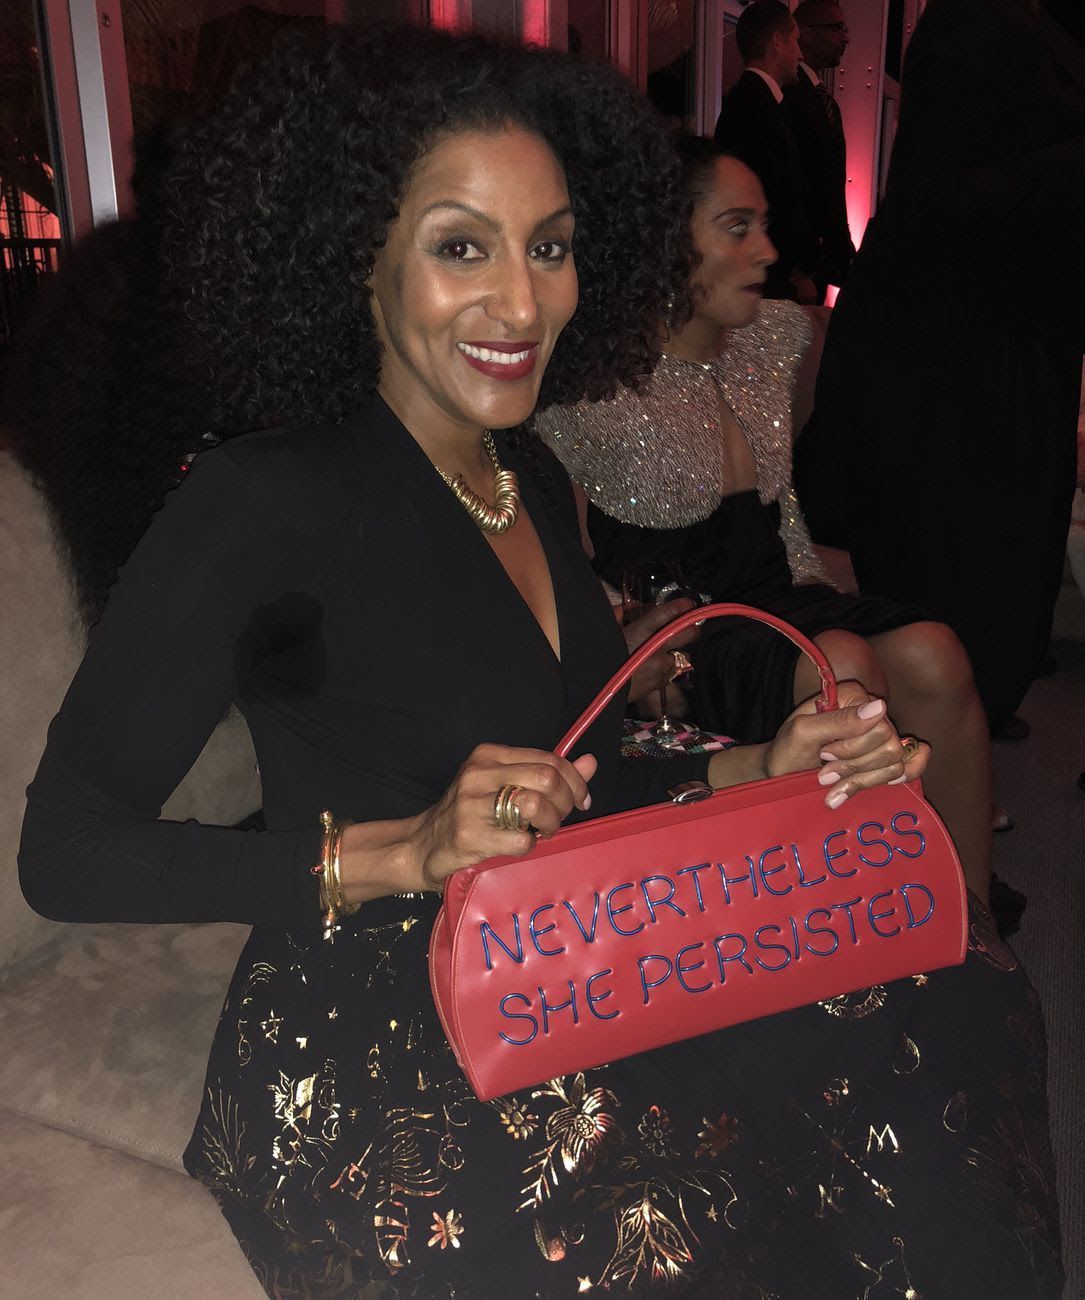 Sarah Jones, who lives in New York and L.A., toted a purse by Michele Pred. (Axios photo)